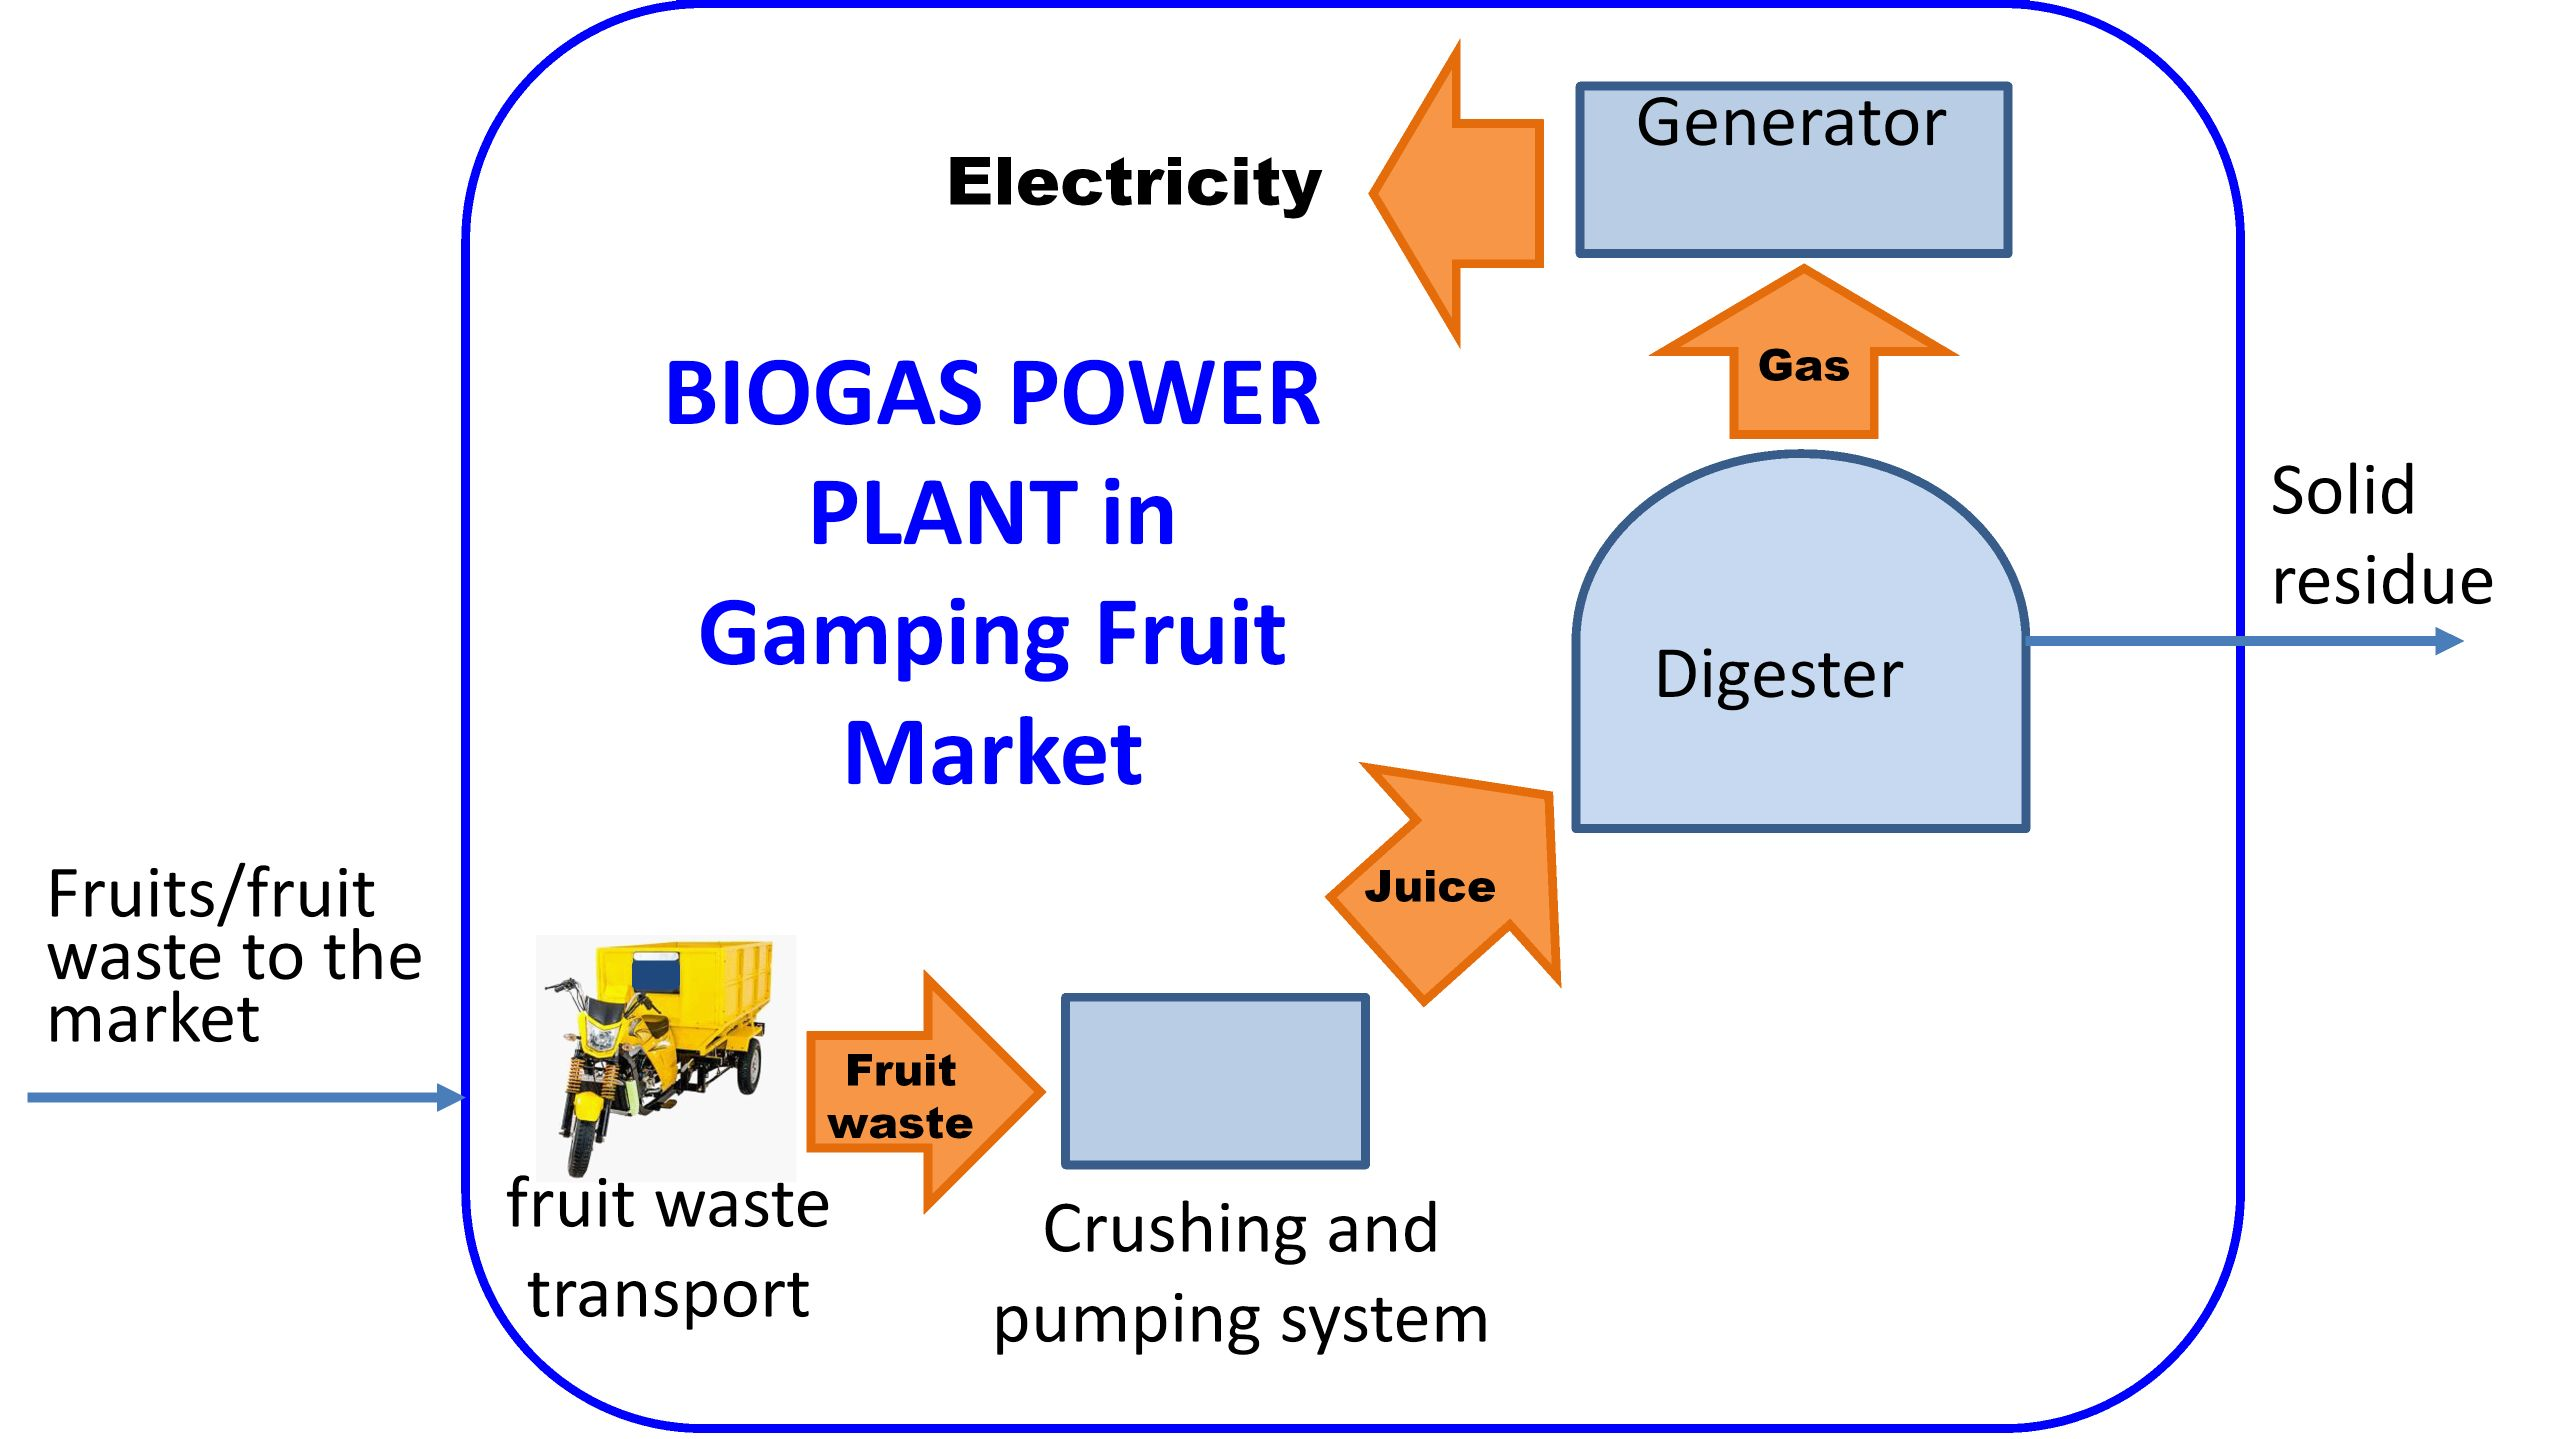 Utilization of Fruit Waste as Biogas Plant Feed and its Superiority Compared to Landfill